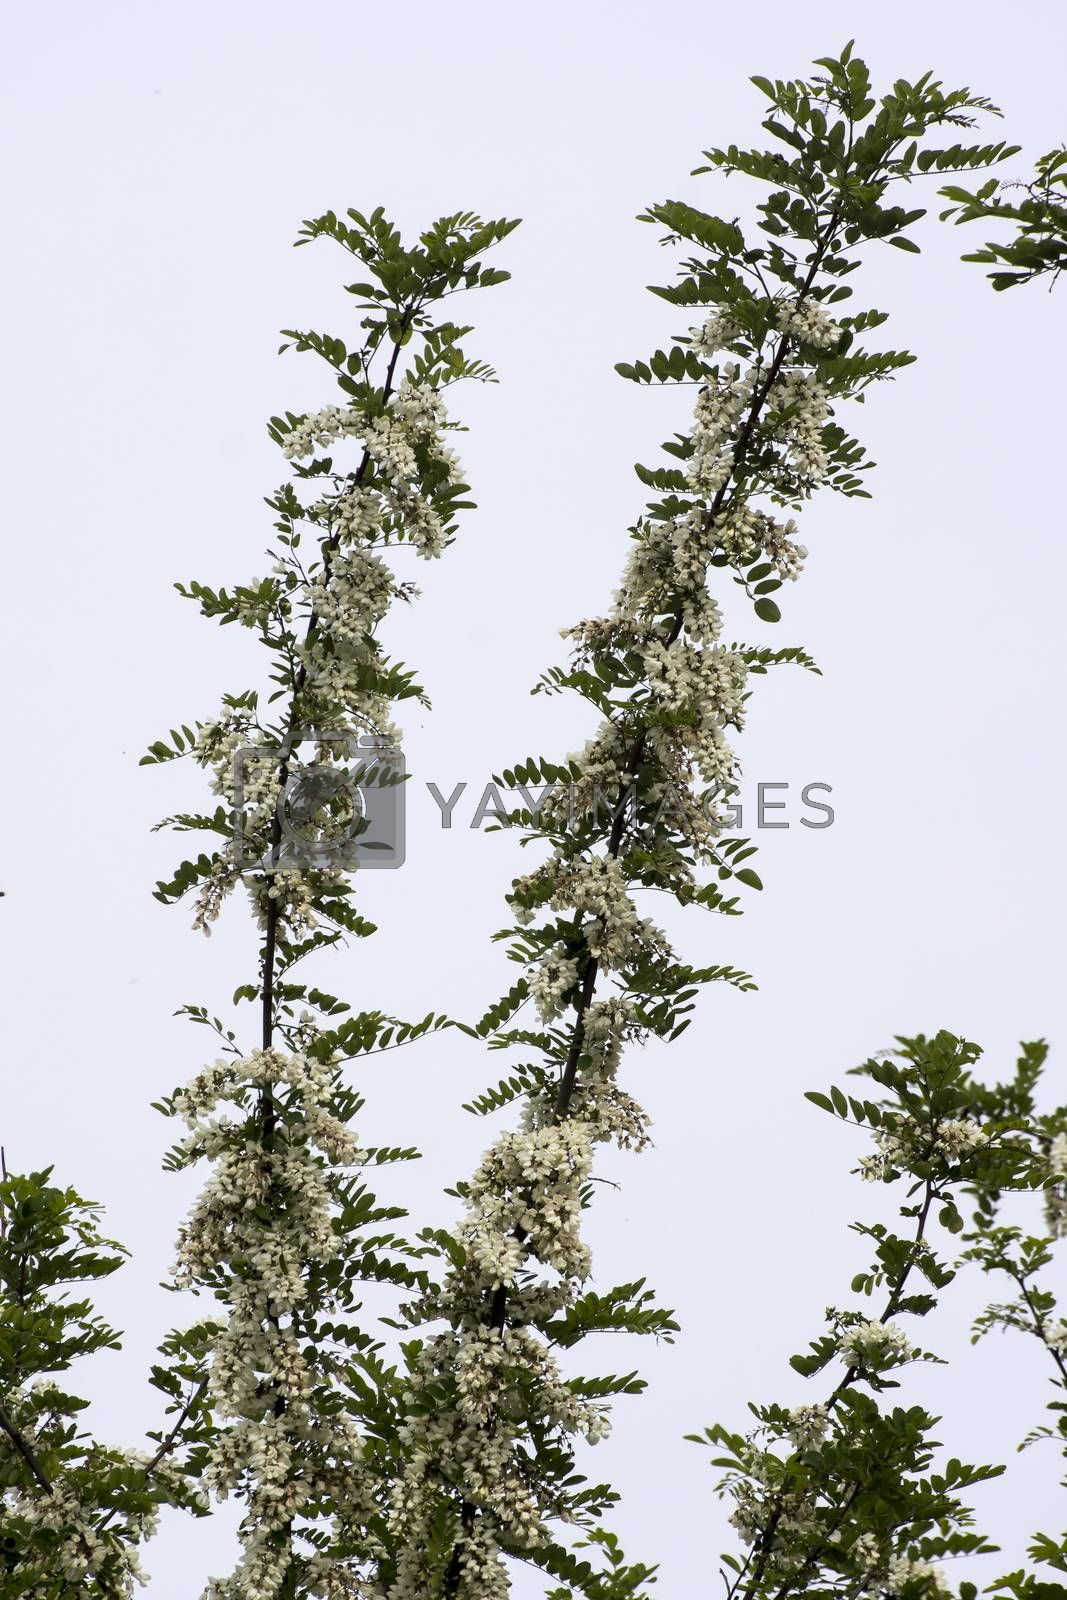 The strong aroma of white acacia flowers.